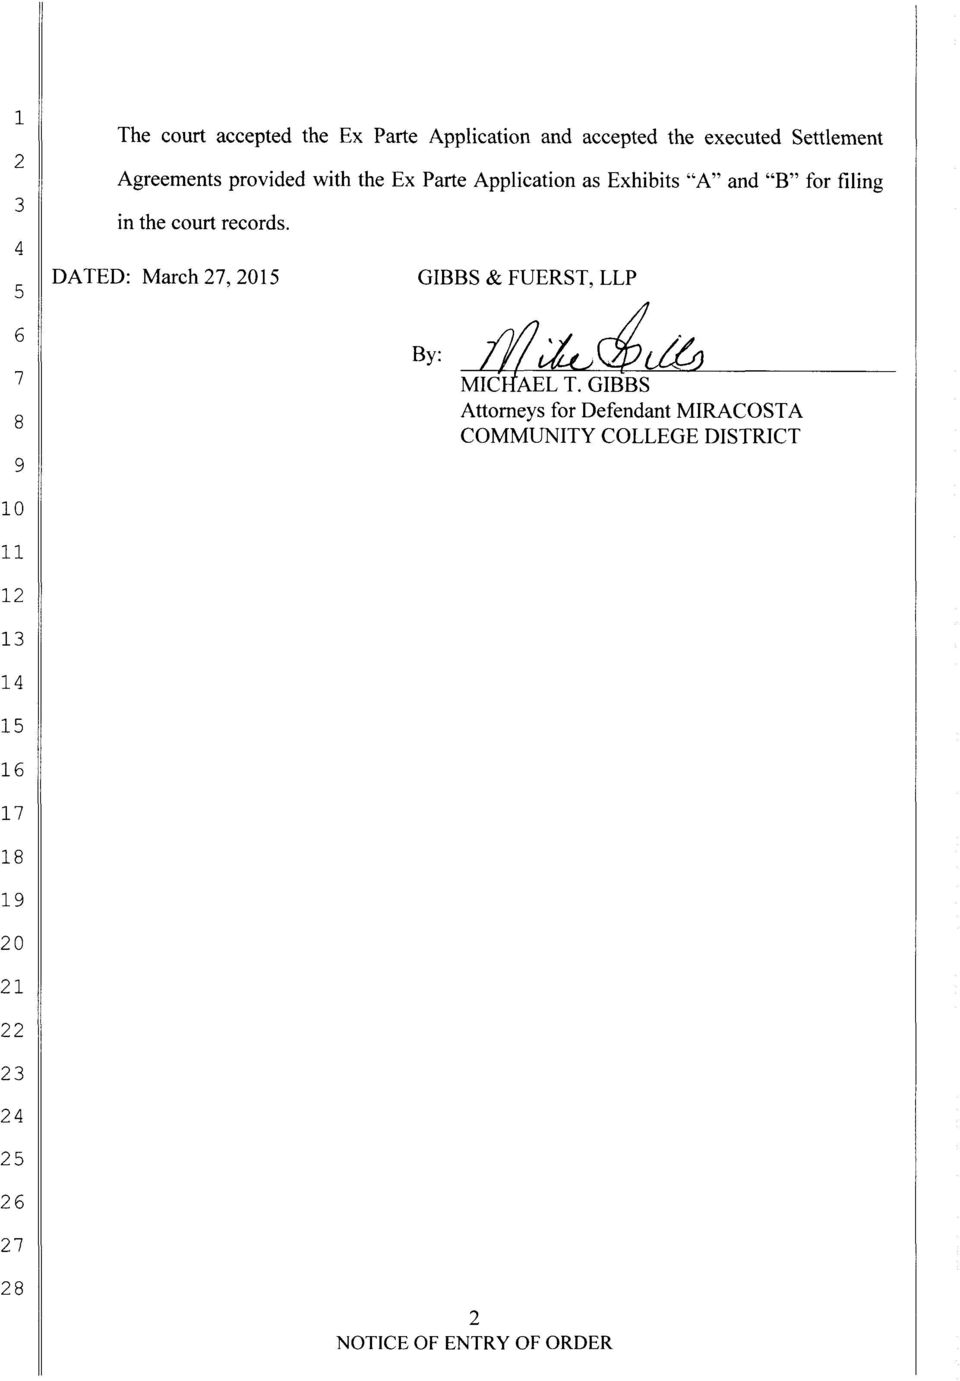 DATED: March 27, 2015 GIBBS & FUERST, LLP By r11~~r:td?